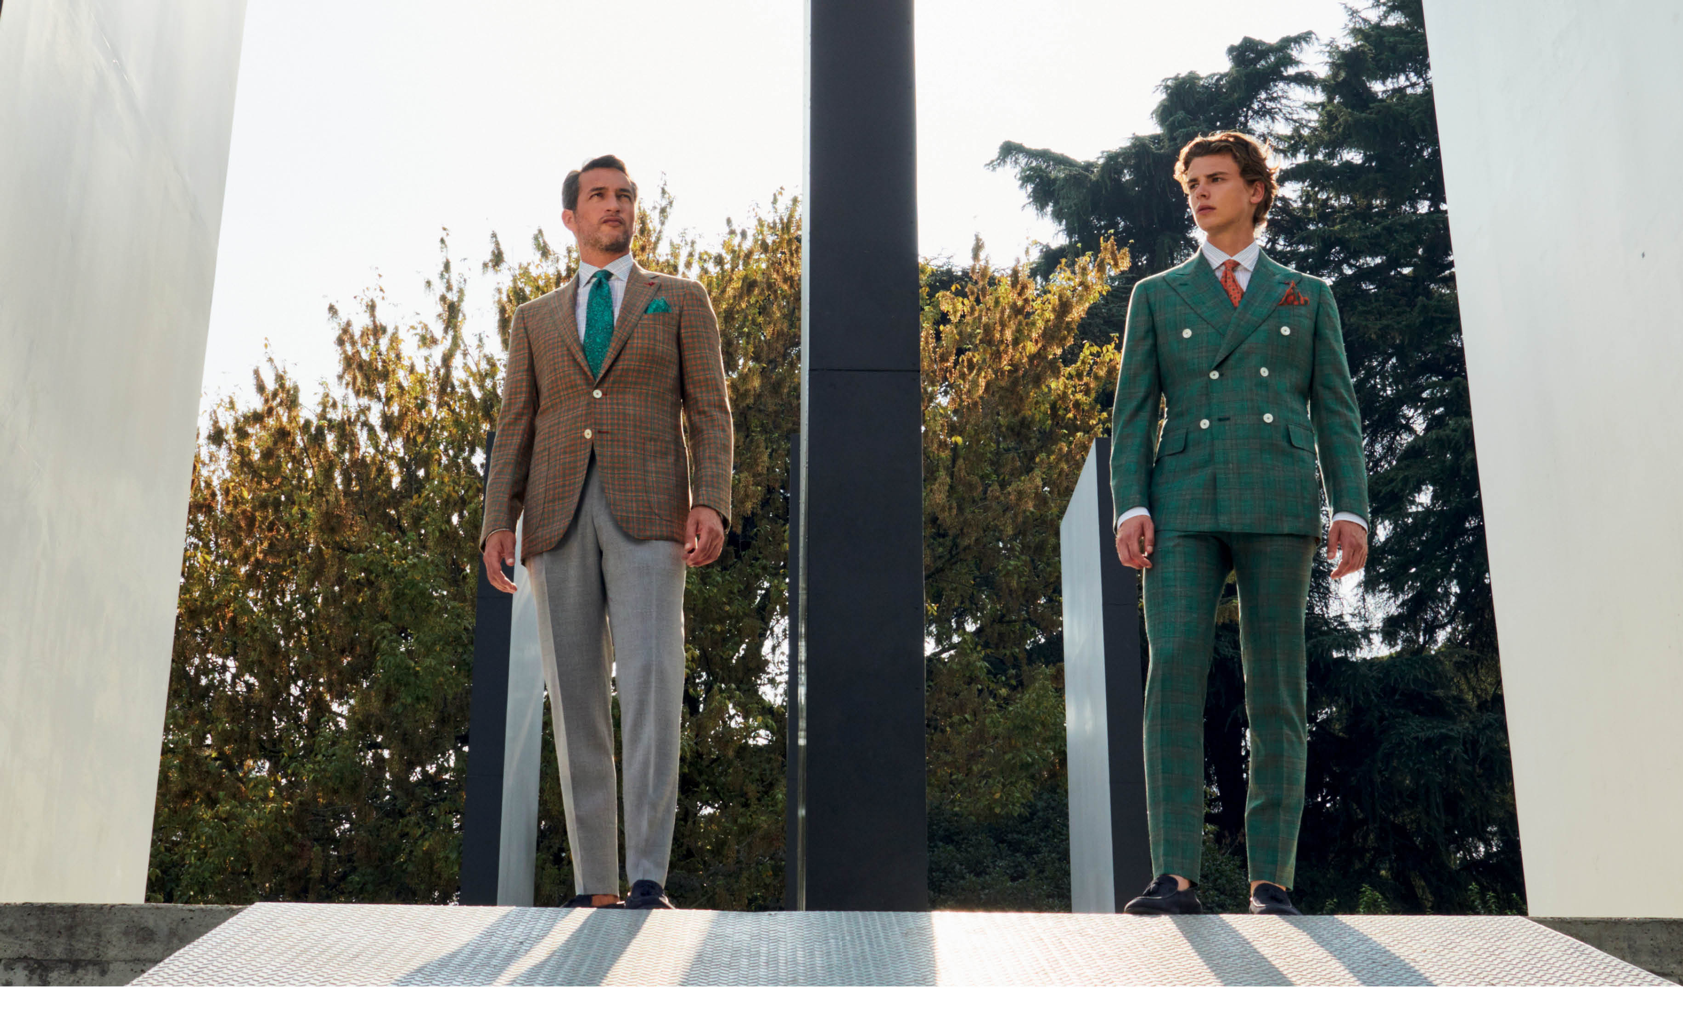 Men on the left is wearing a beige sport jacket, green tie and grey trousers. Men on the right is wearing a green double breasted suit with a red tie